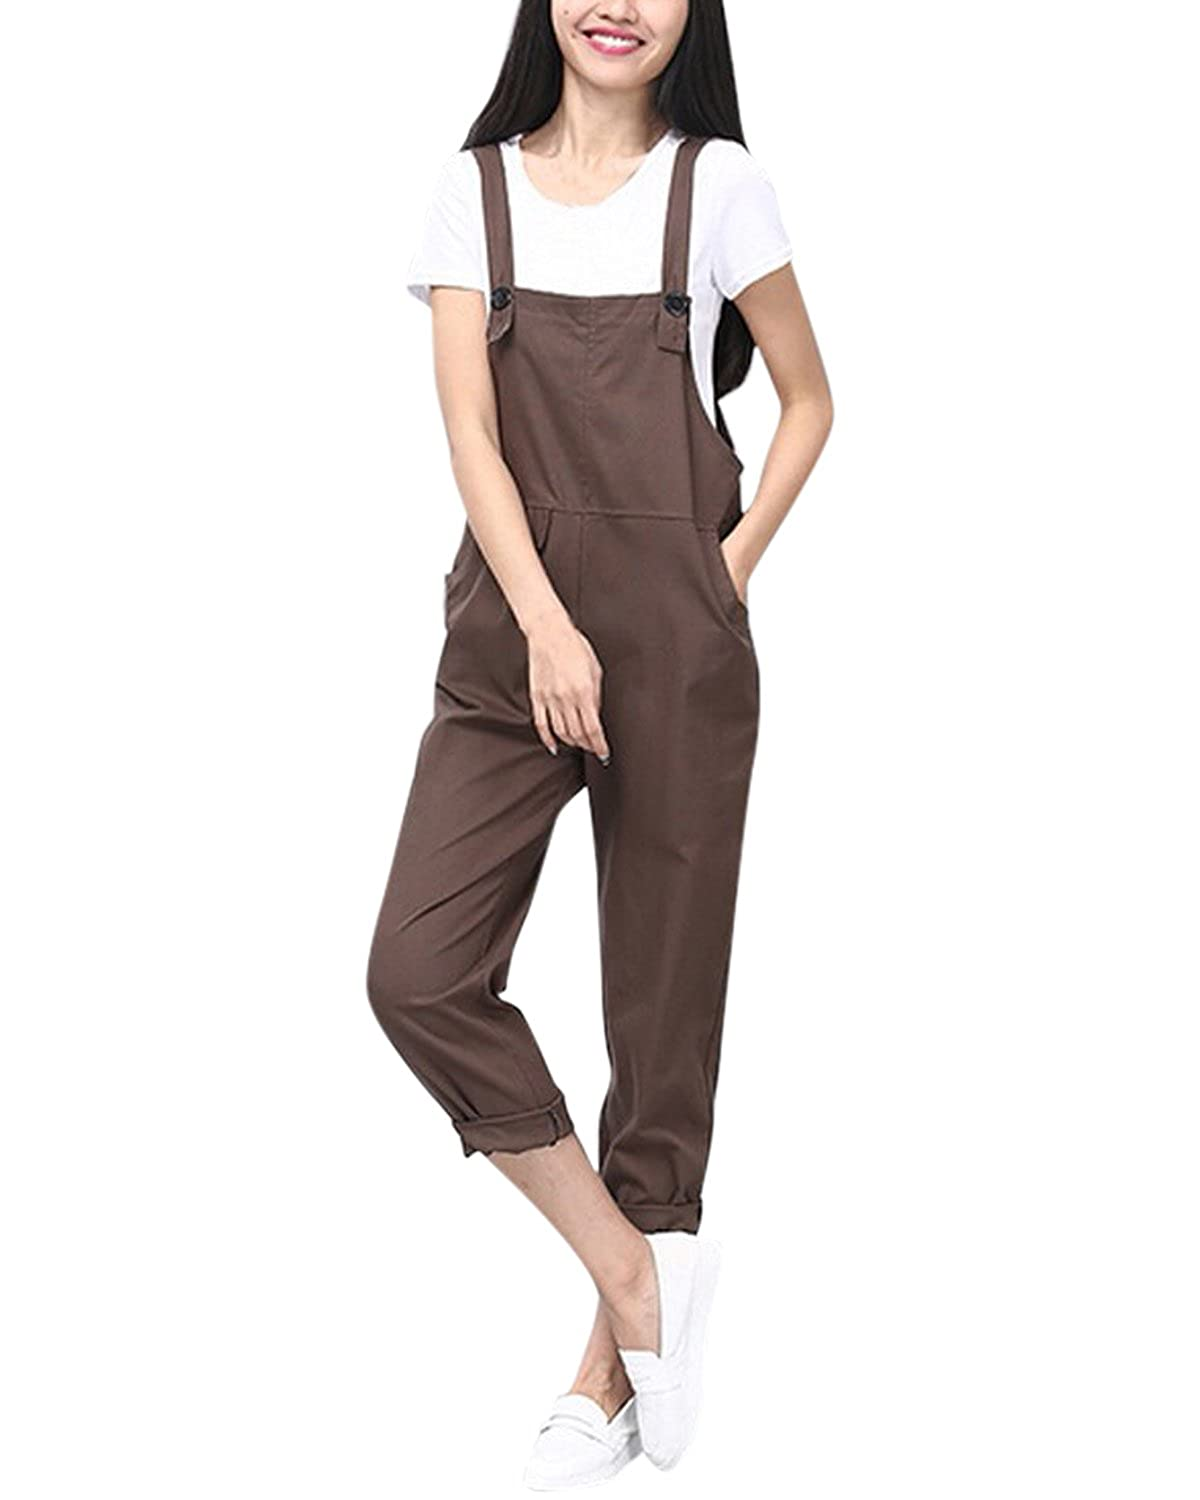 c8fb3475ea4 StyleDome Womens Retro Dungarees Casual Baggy Jumpsuit Loose Sleeveless  Trousers Pants Adjustable Long Playsuit Overalls ZANZEAWirzdoly4196